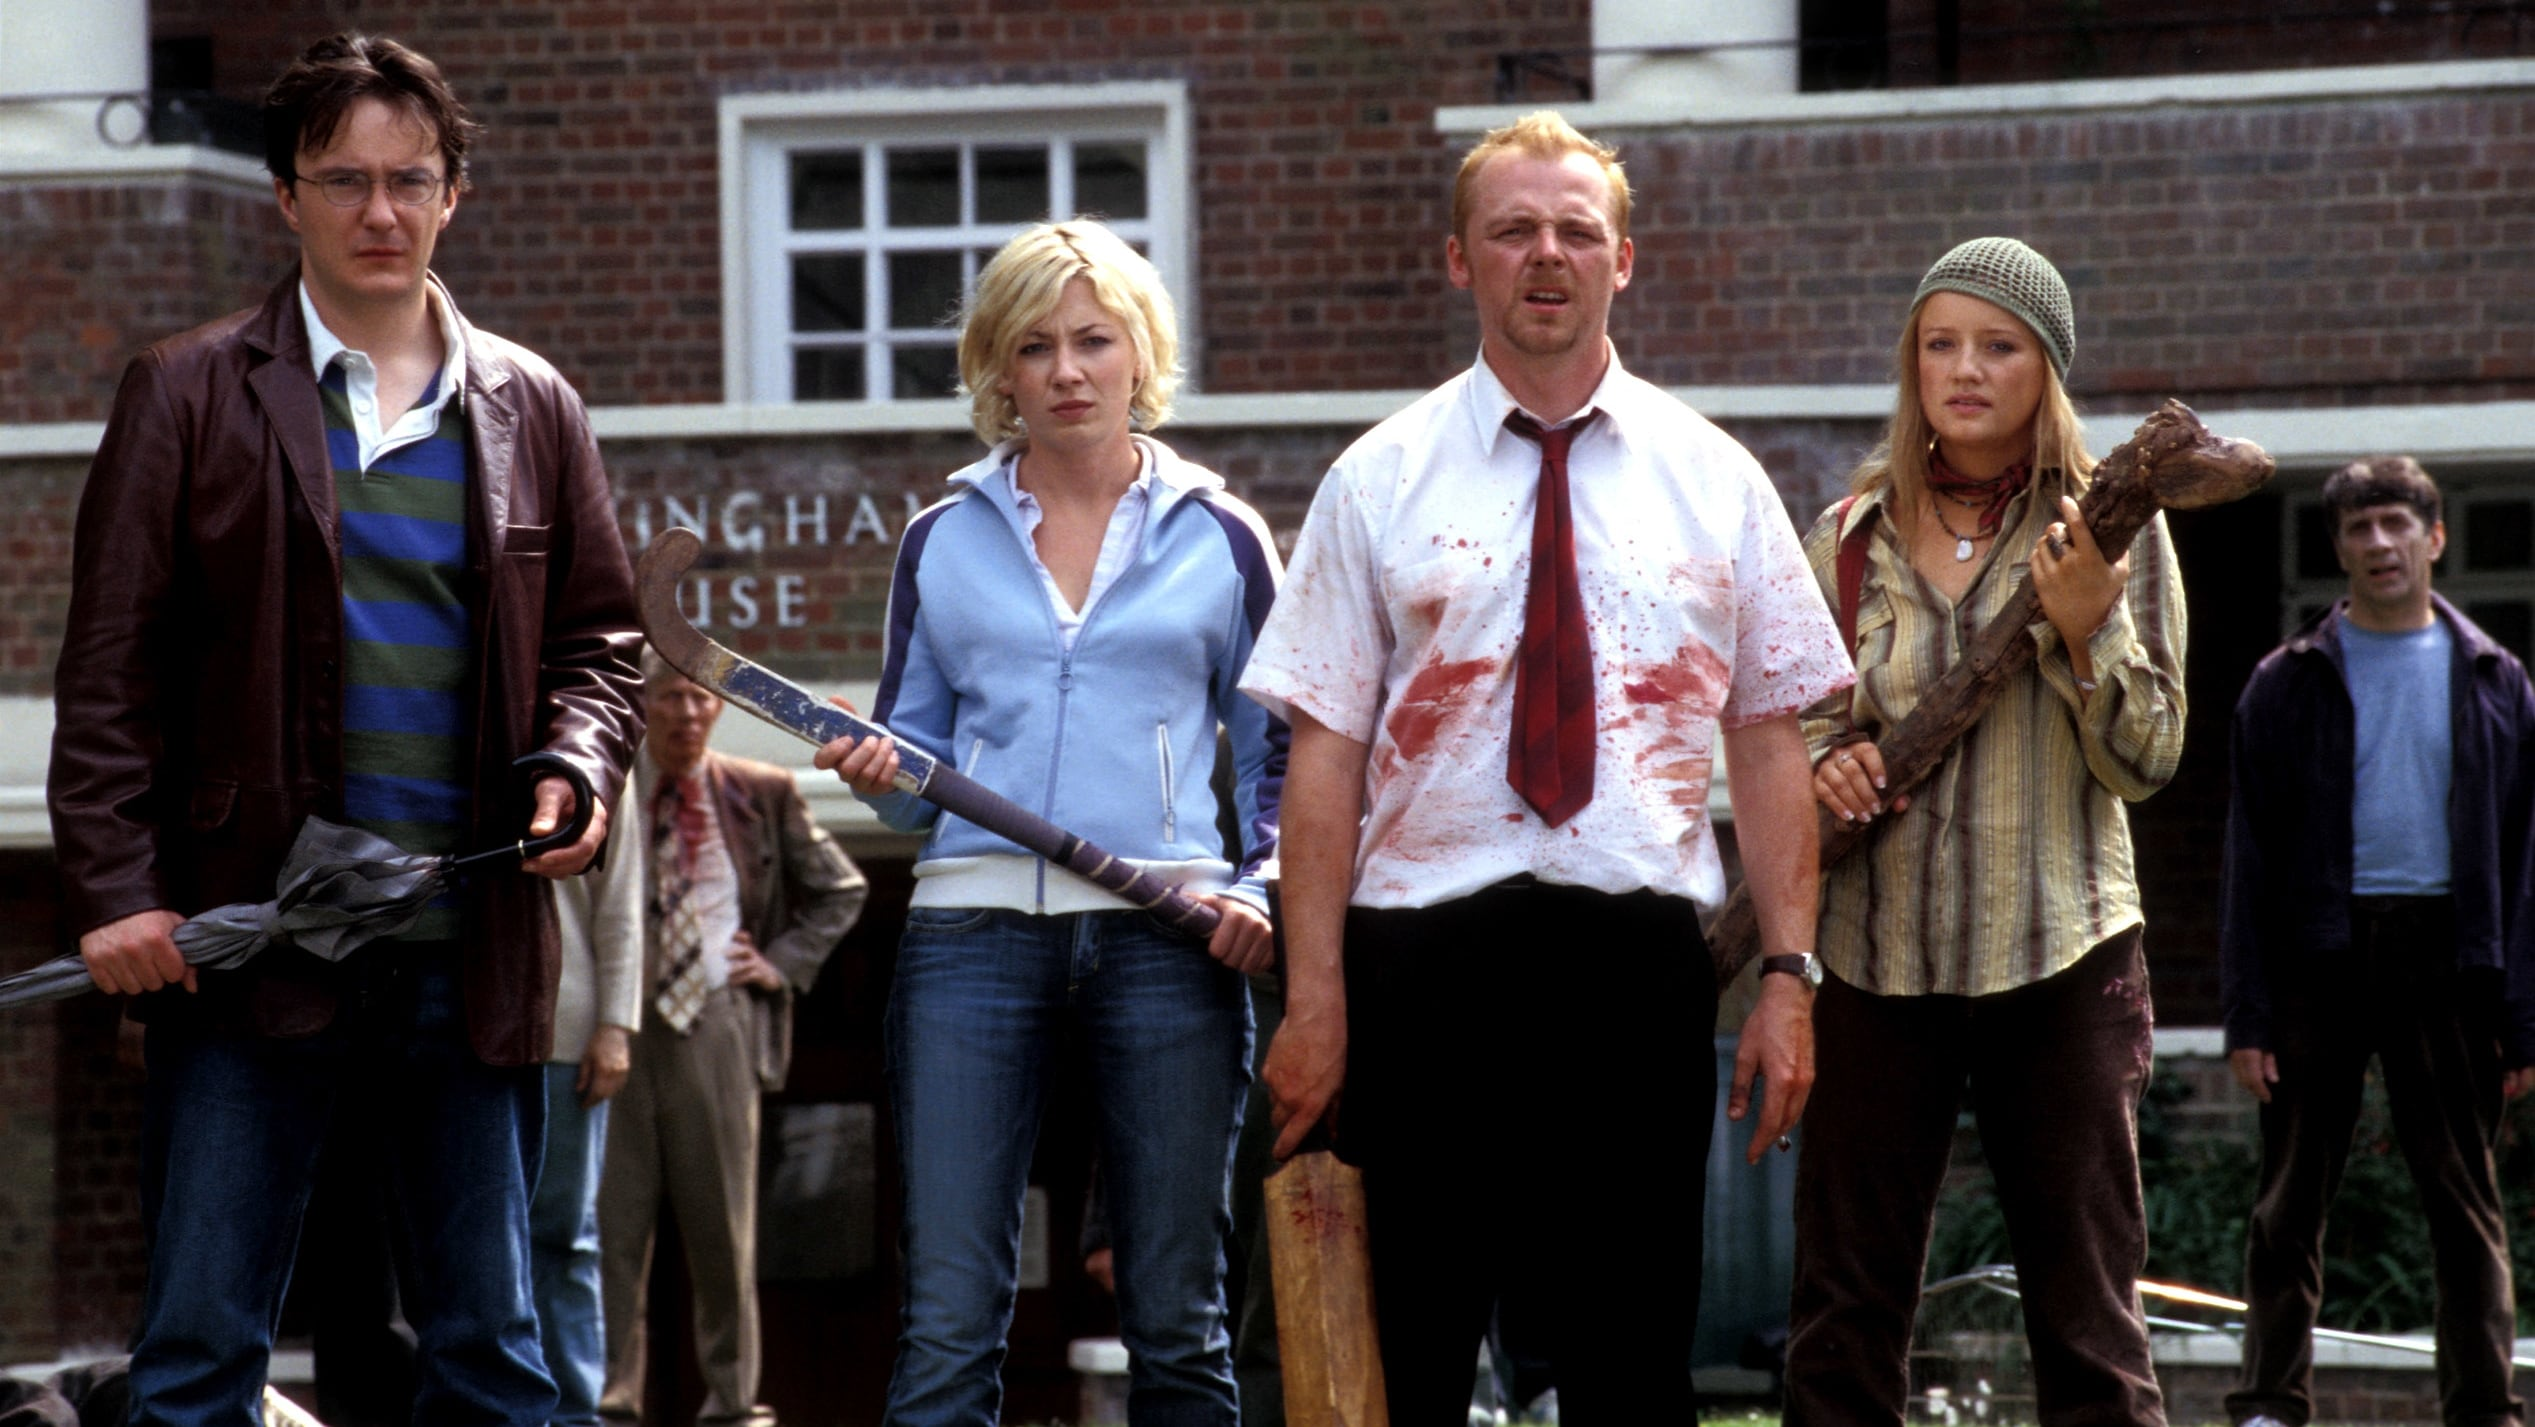 Shaun of the Dead